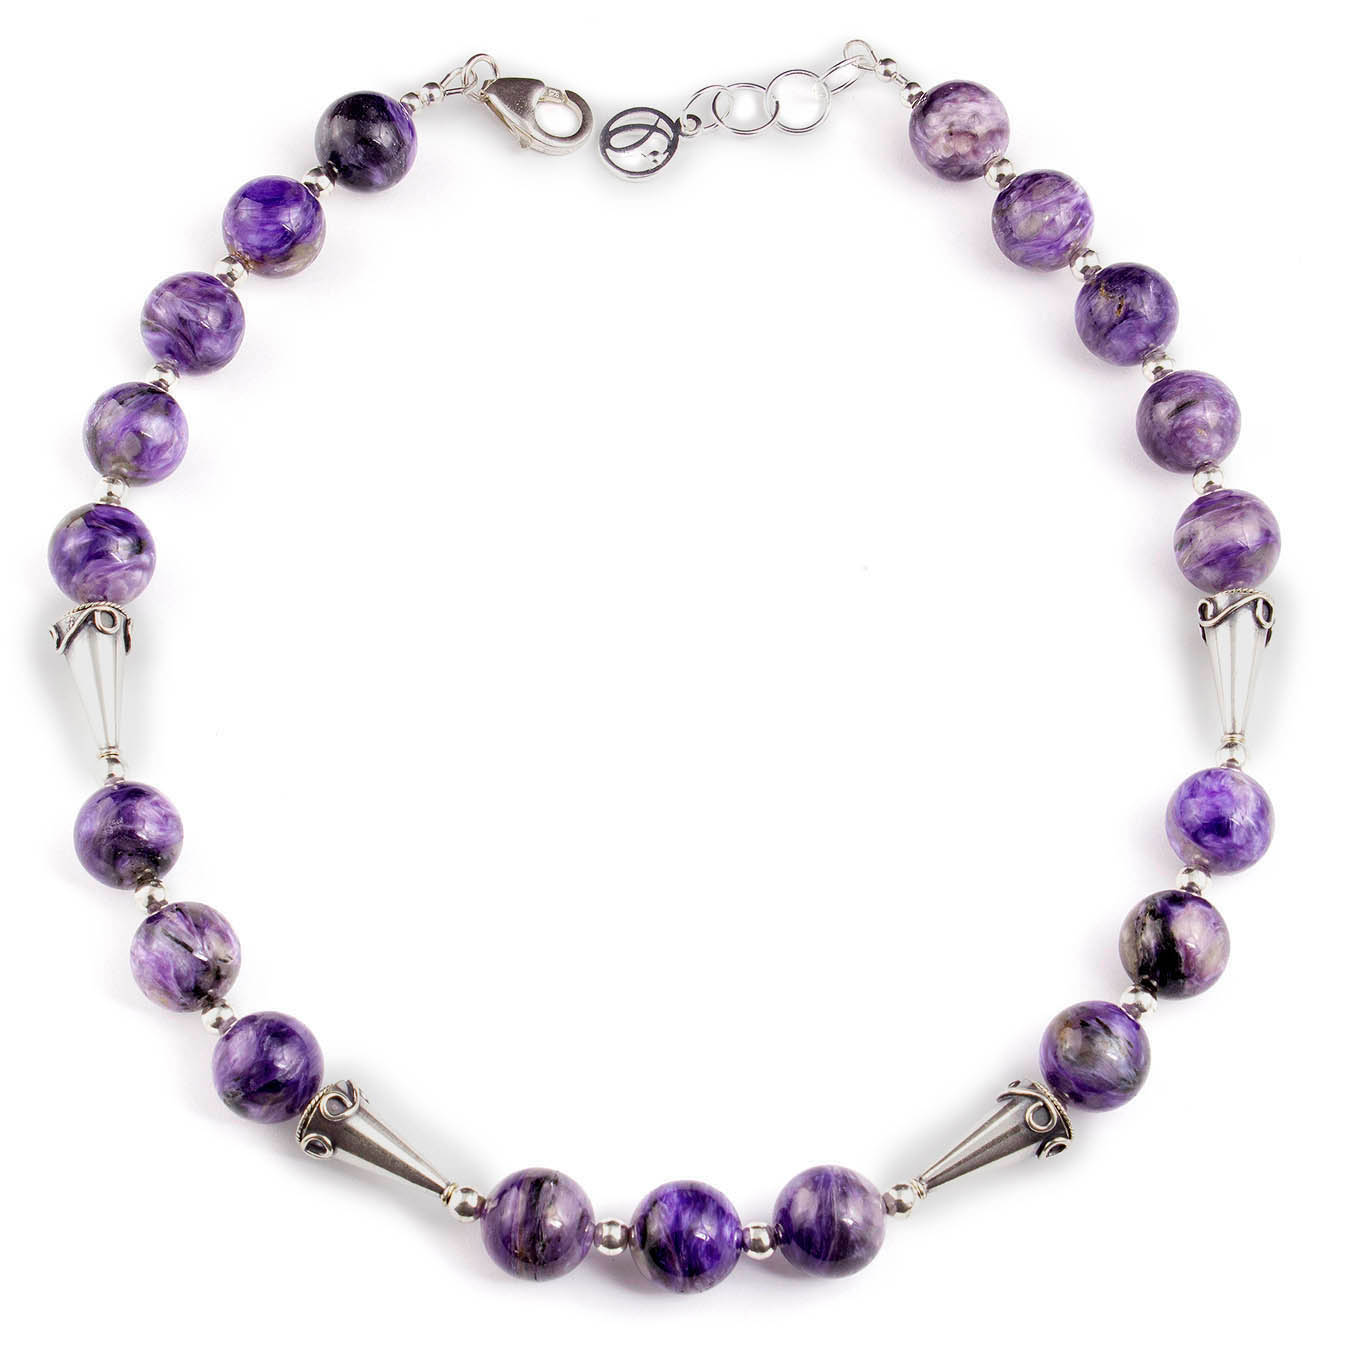 Handcrafted bead jewelry made with purple charoite and Bali silver